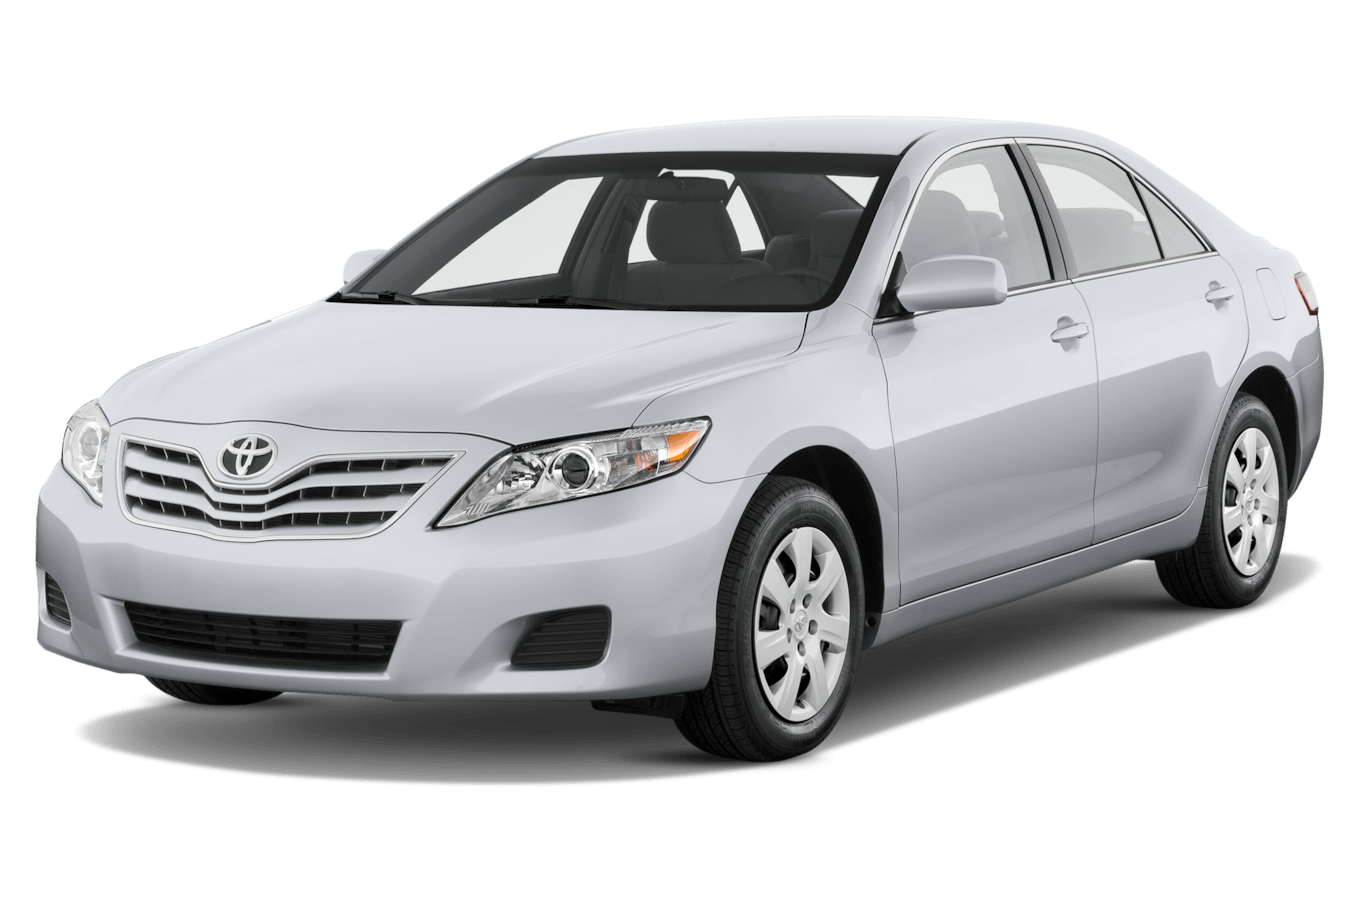 all new camry type v toyota yaris trd terbaru 2011 reviews and rating motor trend